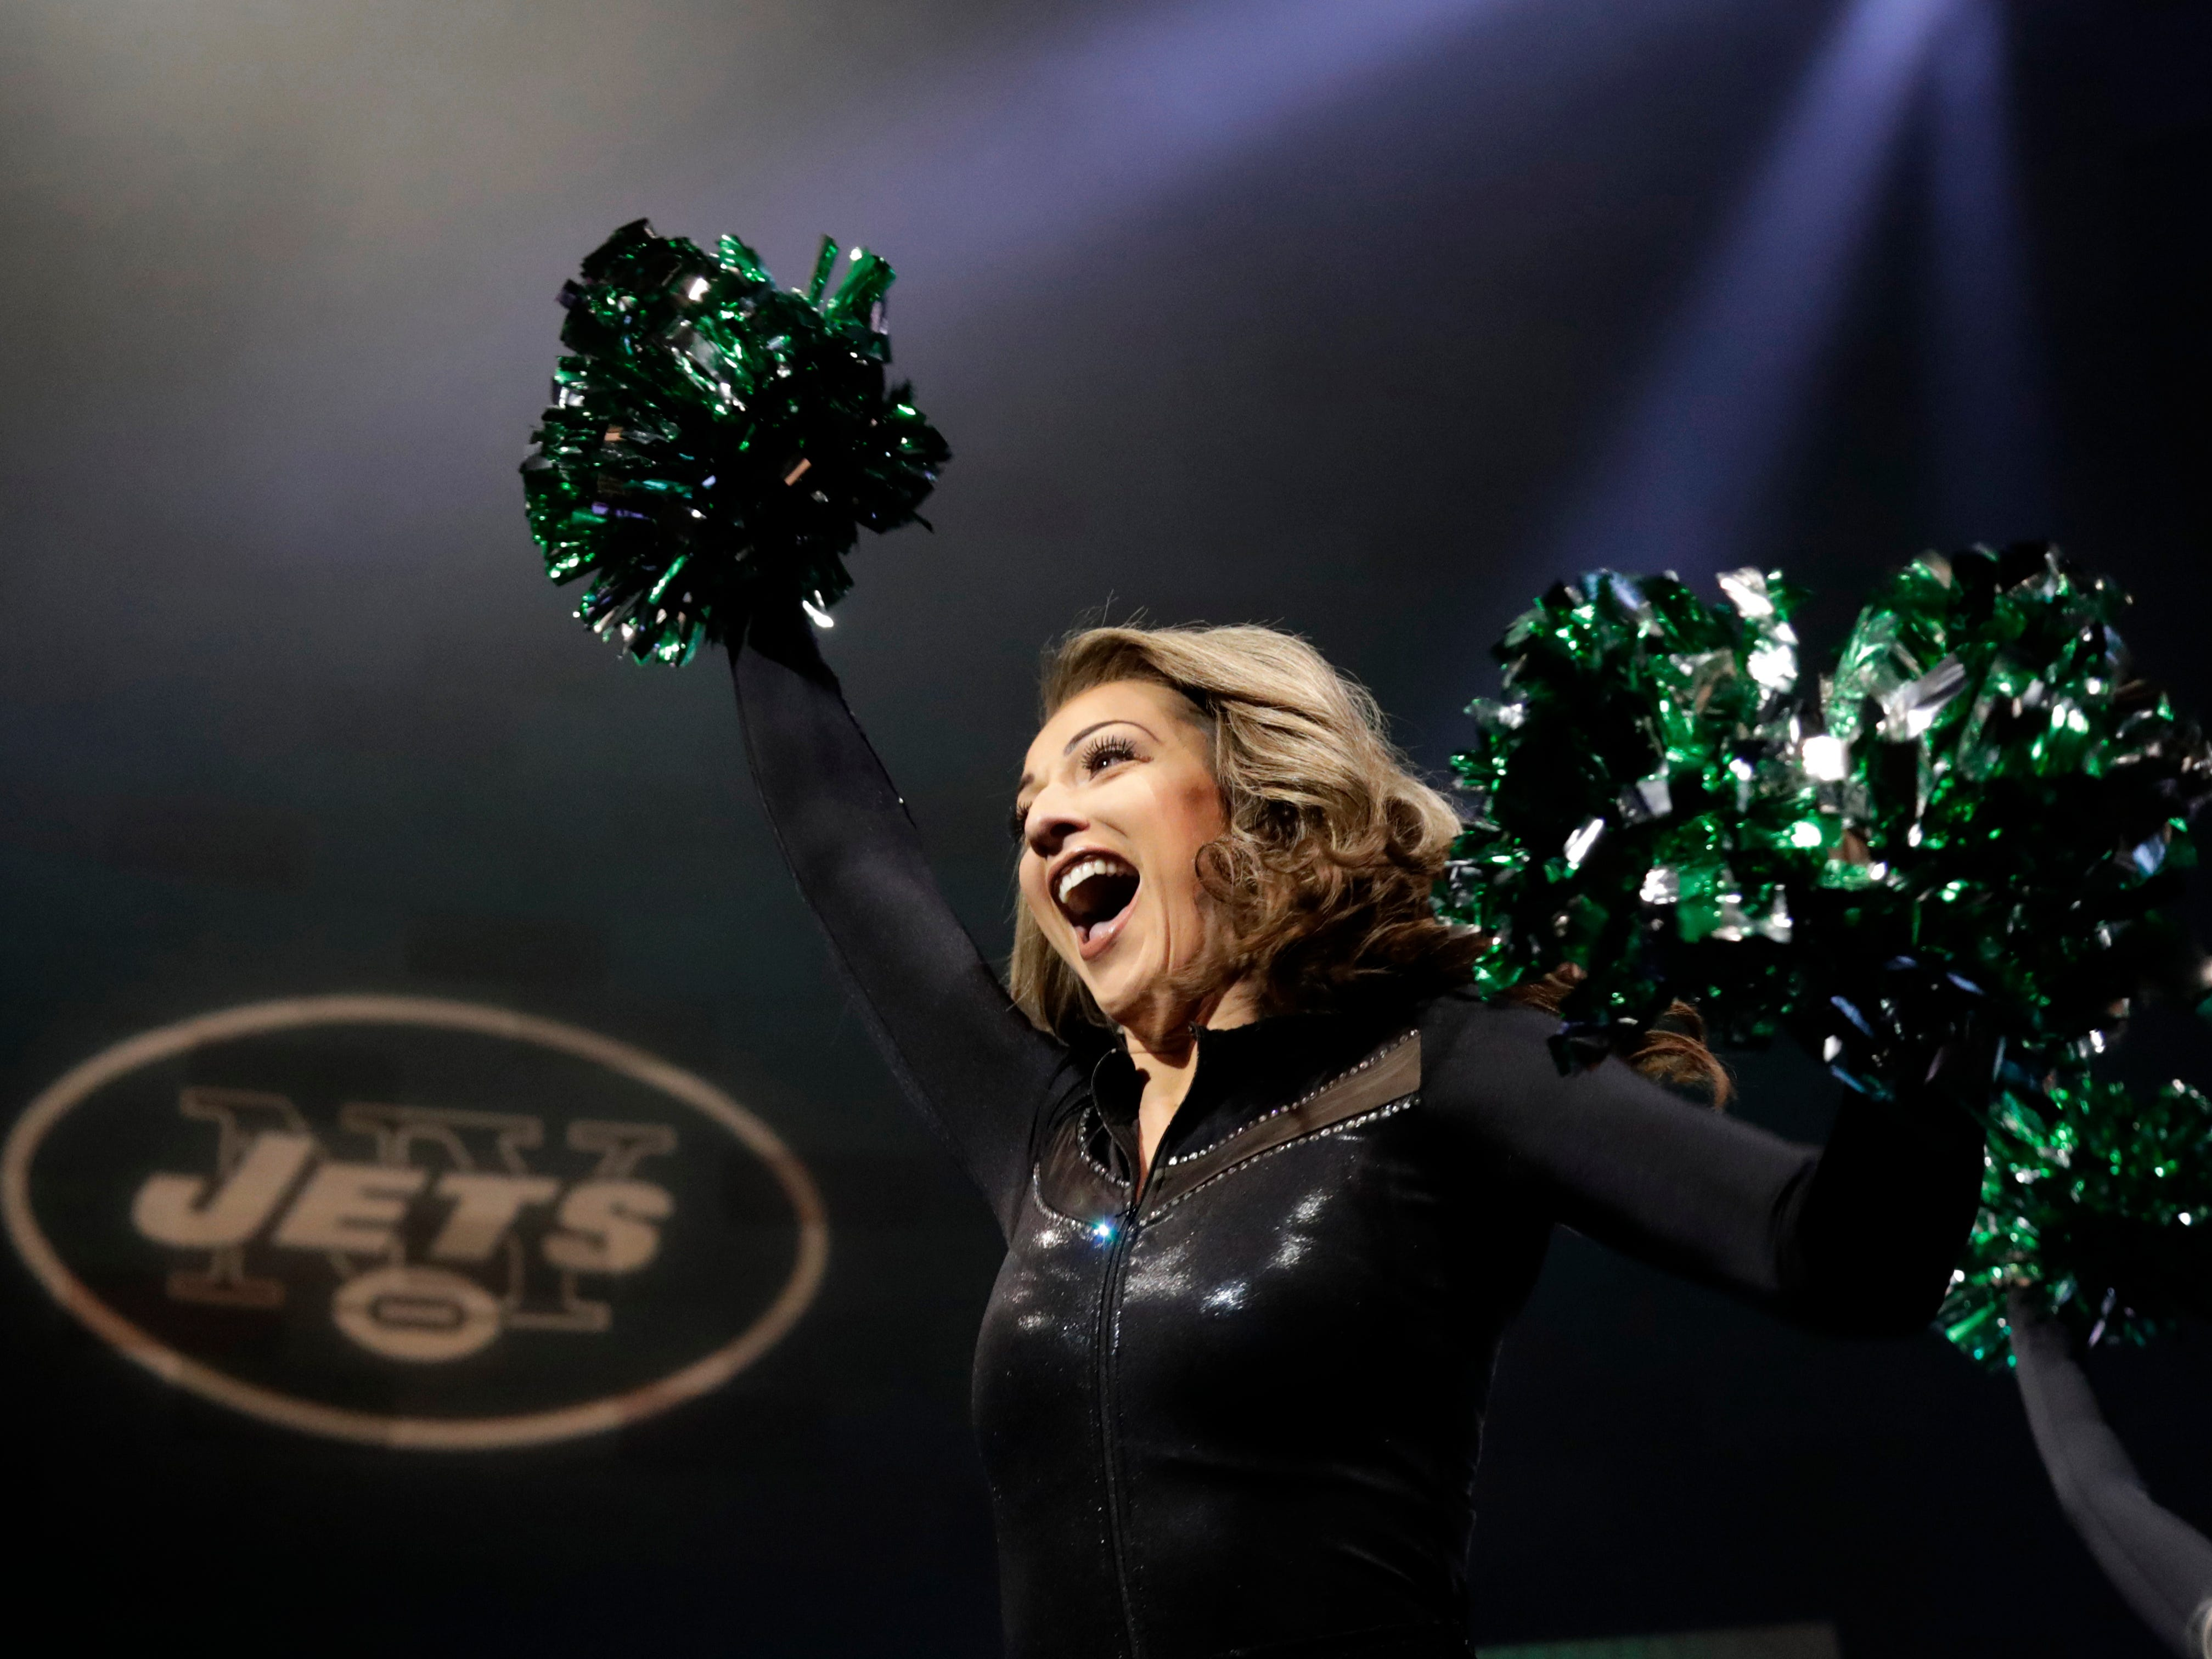 A member of the New York Jets Flight Crew performs during an event unveiling the team's new uniforms.